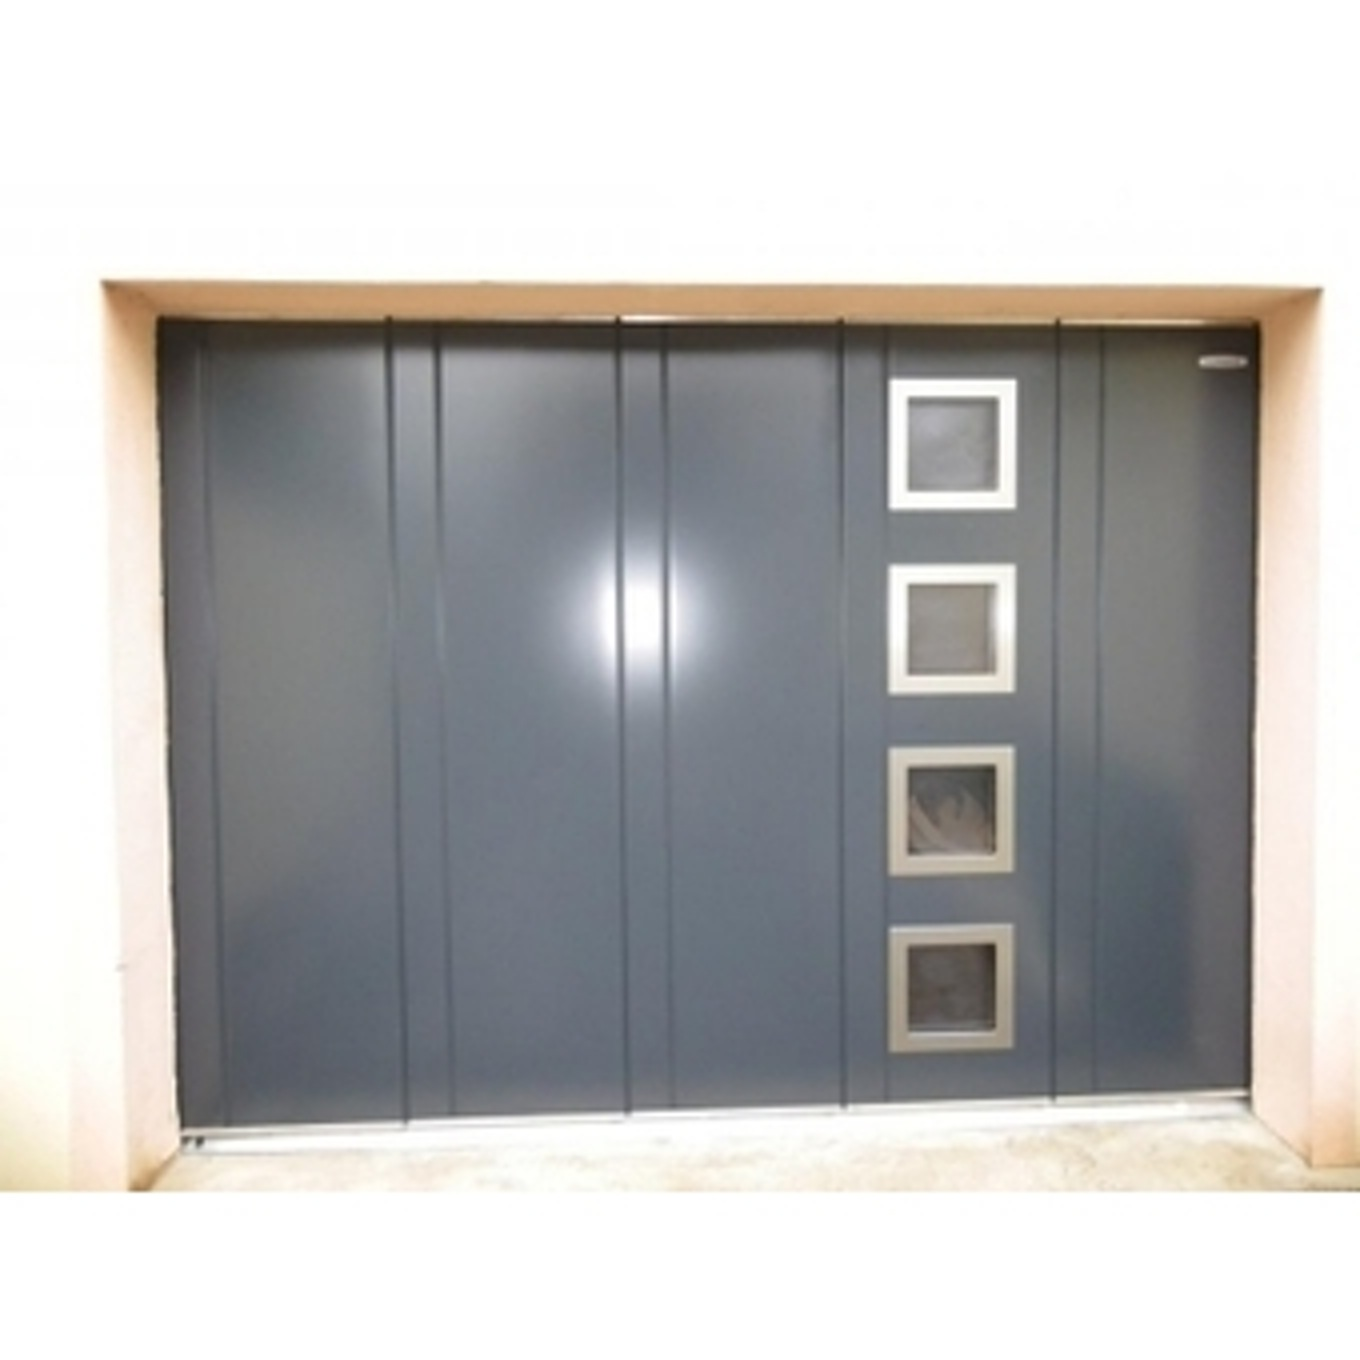 Serrure porte de garage brico depot isolation id es for Porte isothermique brico depot